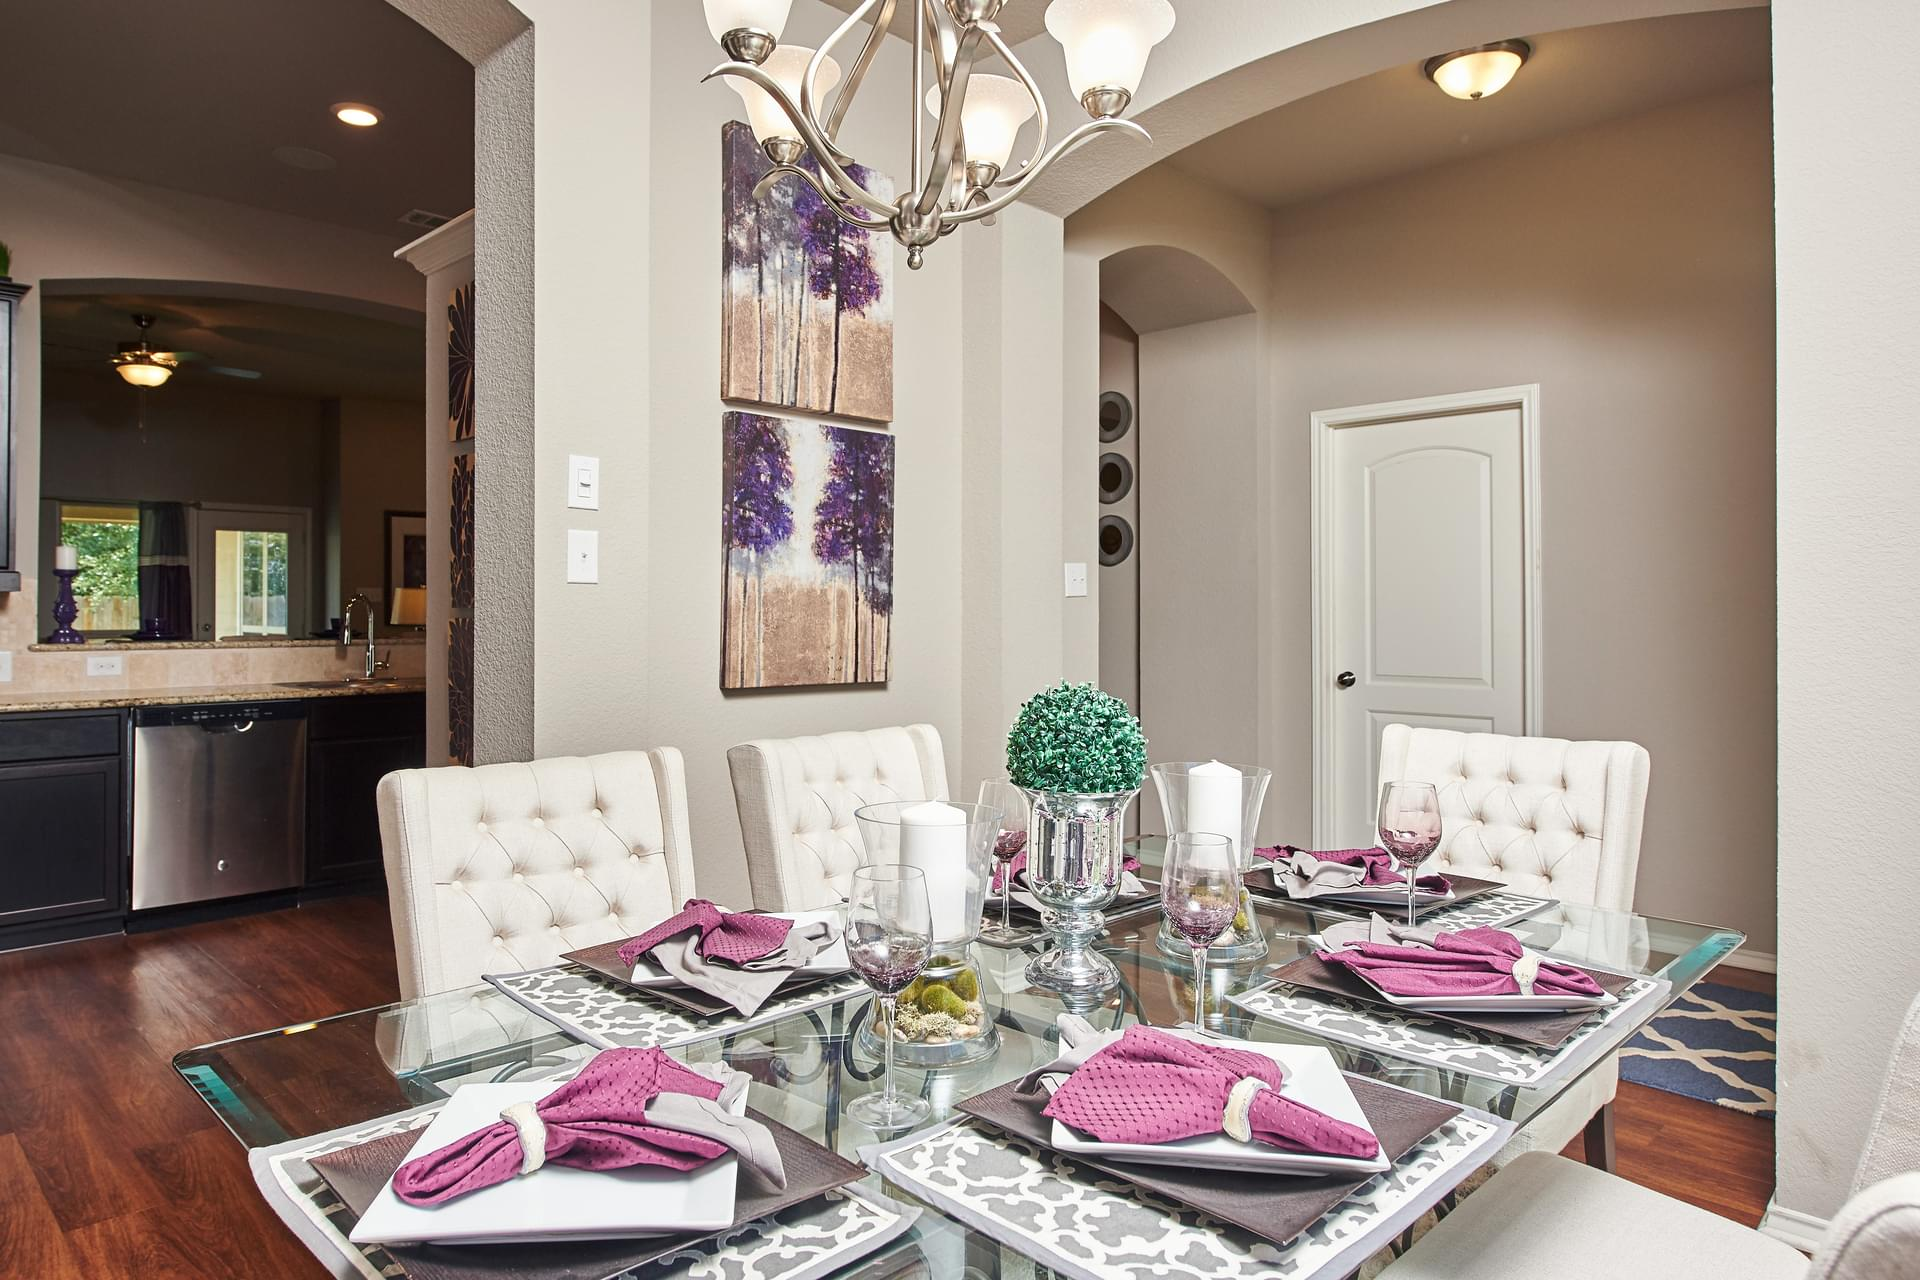 South Fork New Homes in Waco, TX